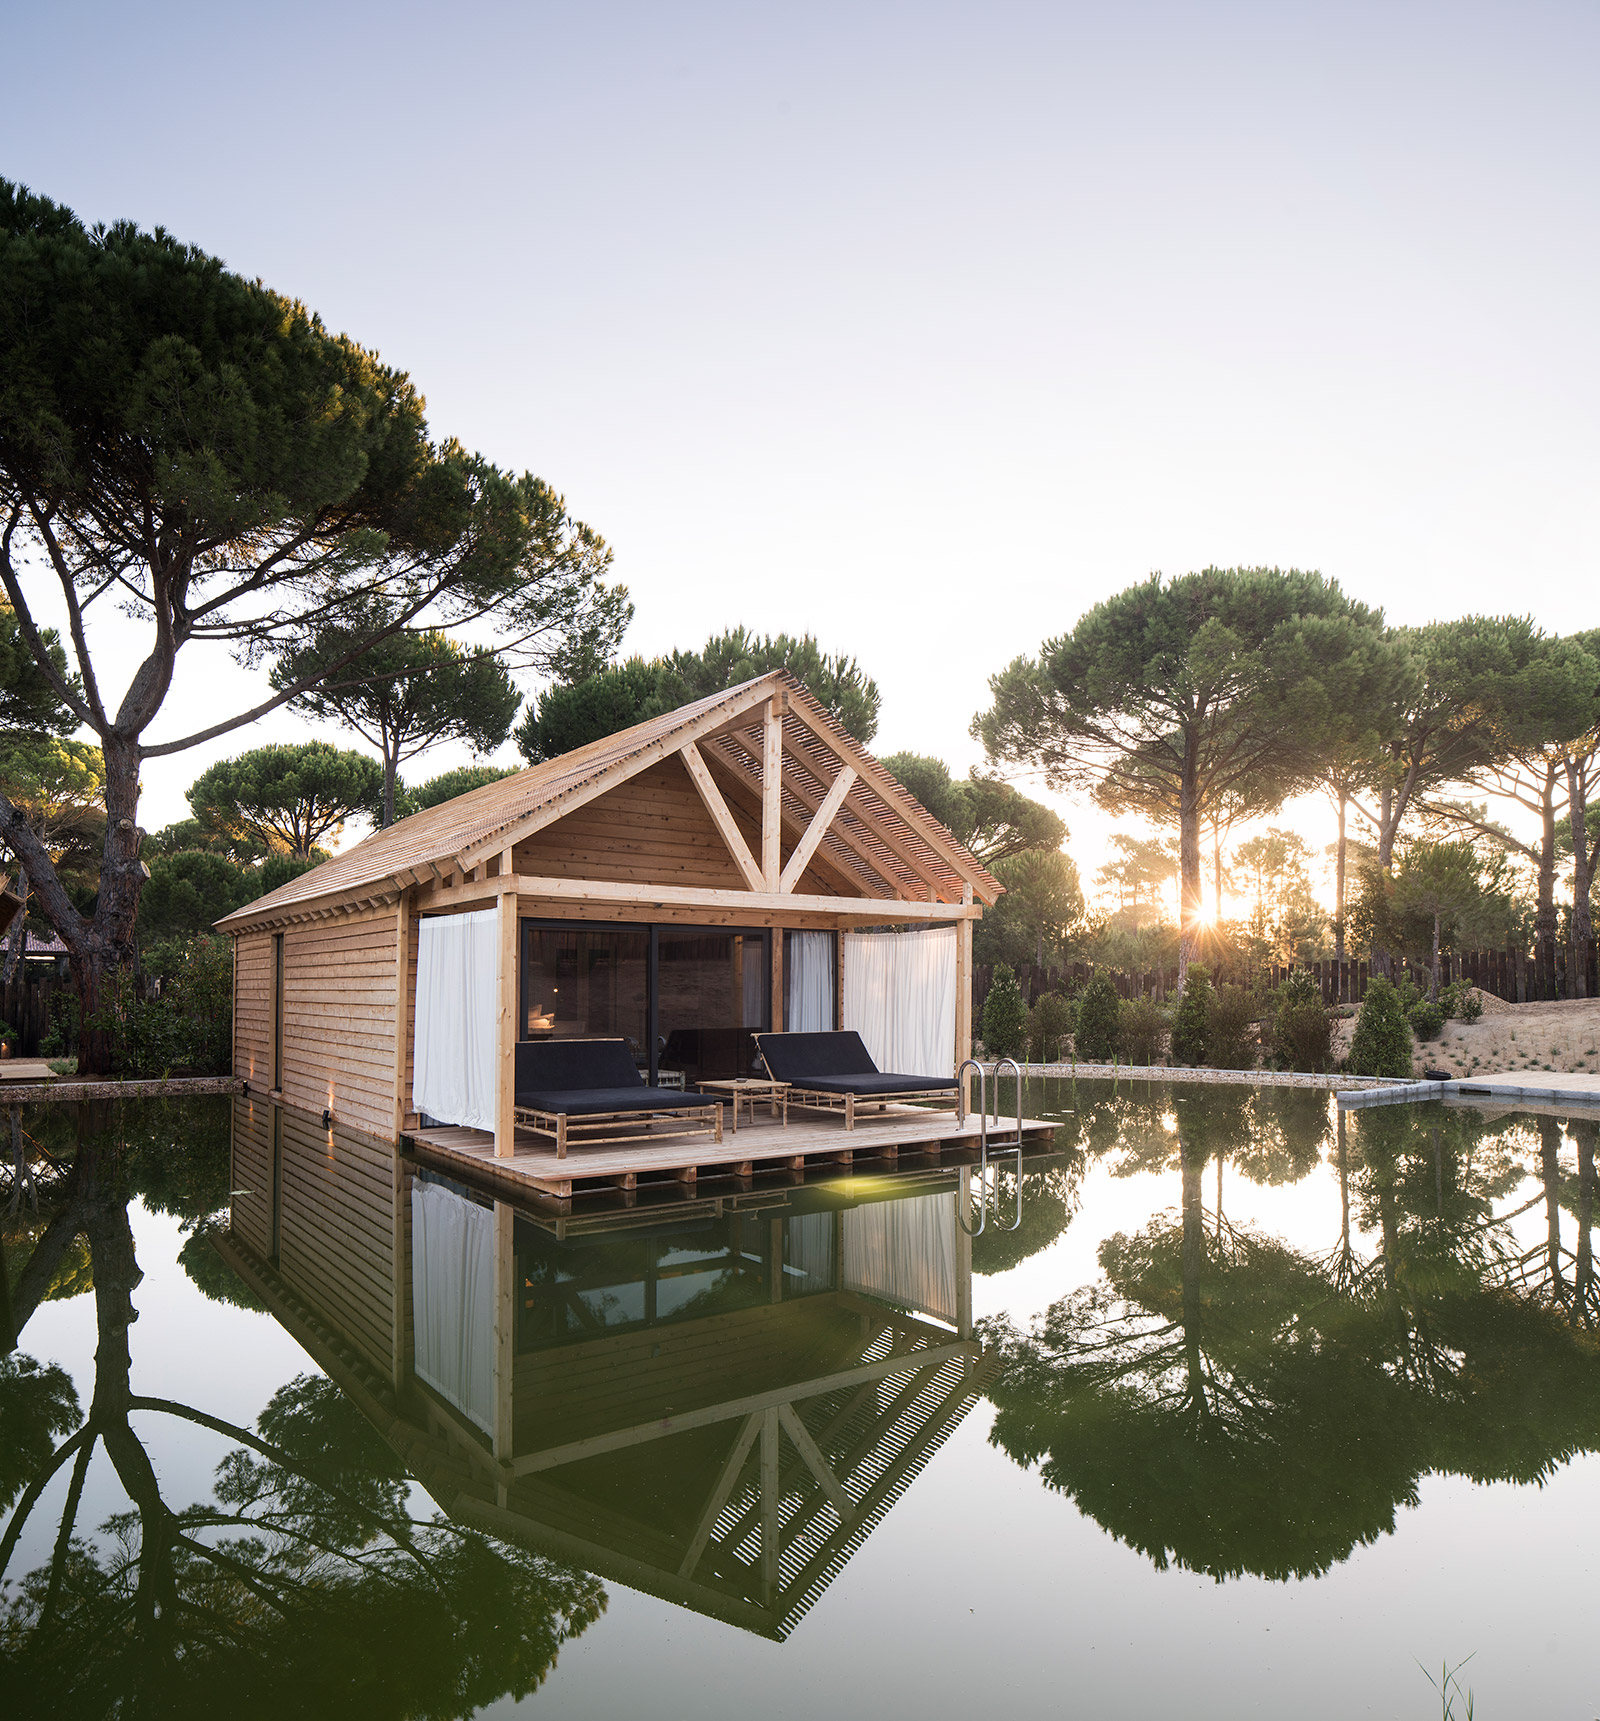 Sublime's Bio Pool Suites are independent villas, each with a terrace from which you can plunge into a private pool naturally cleaned by aquatic plants.